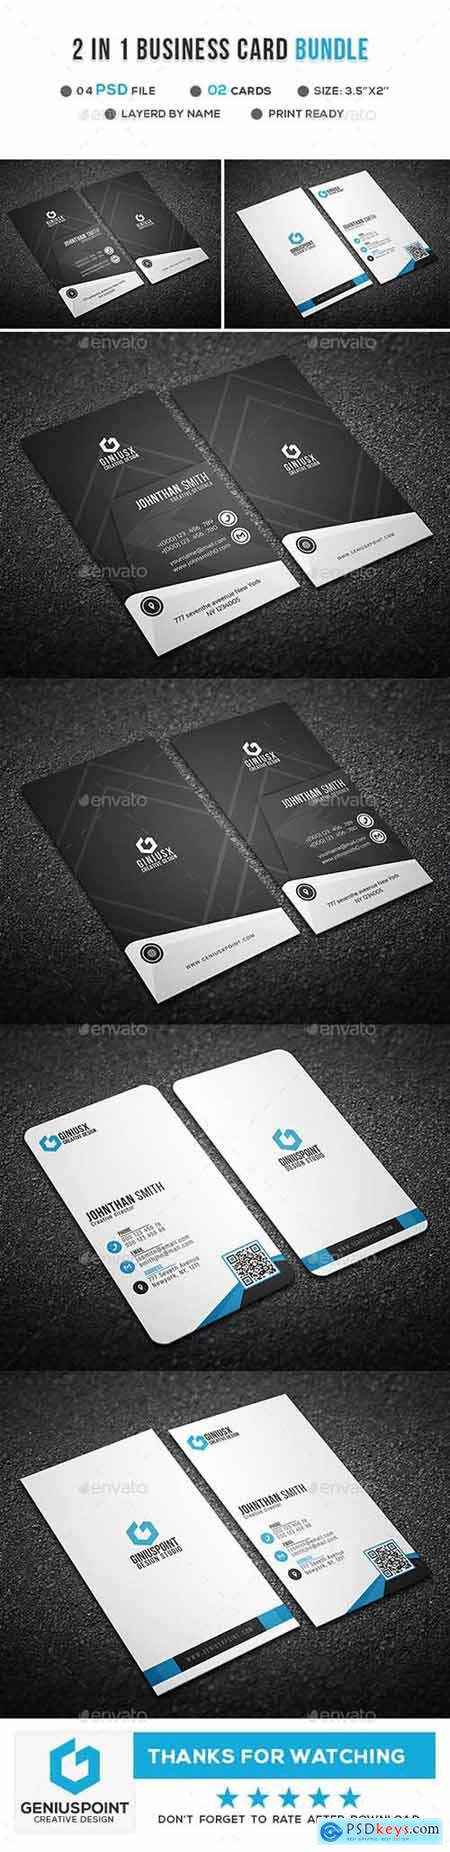 2 in 1 Business Card Bundle 21255328